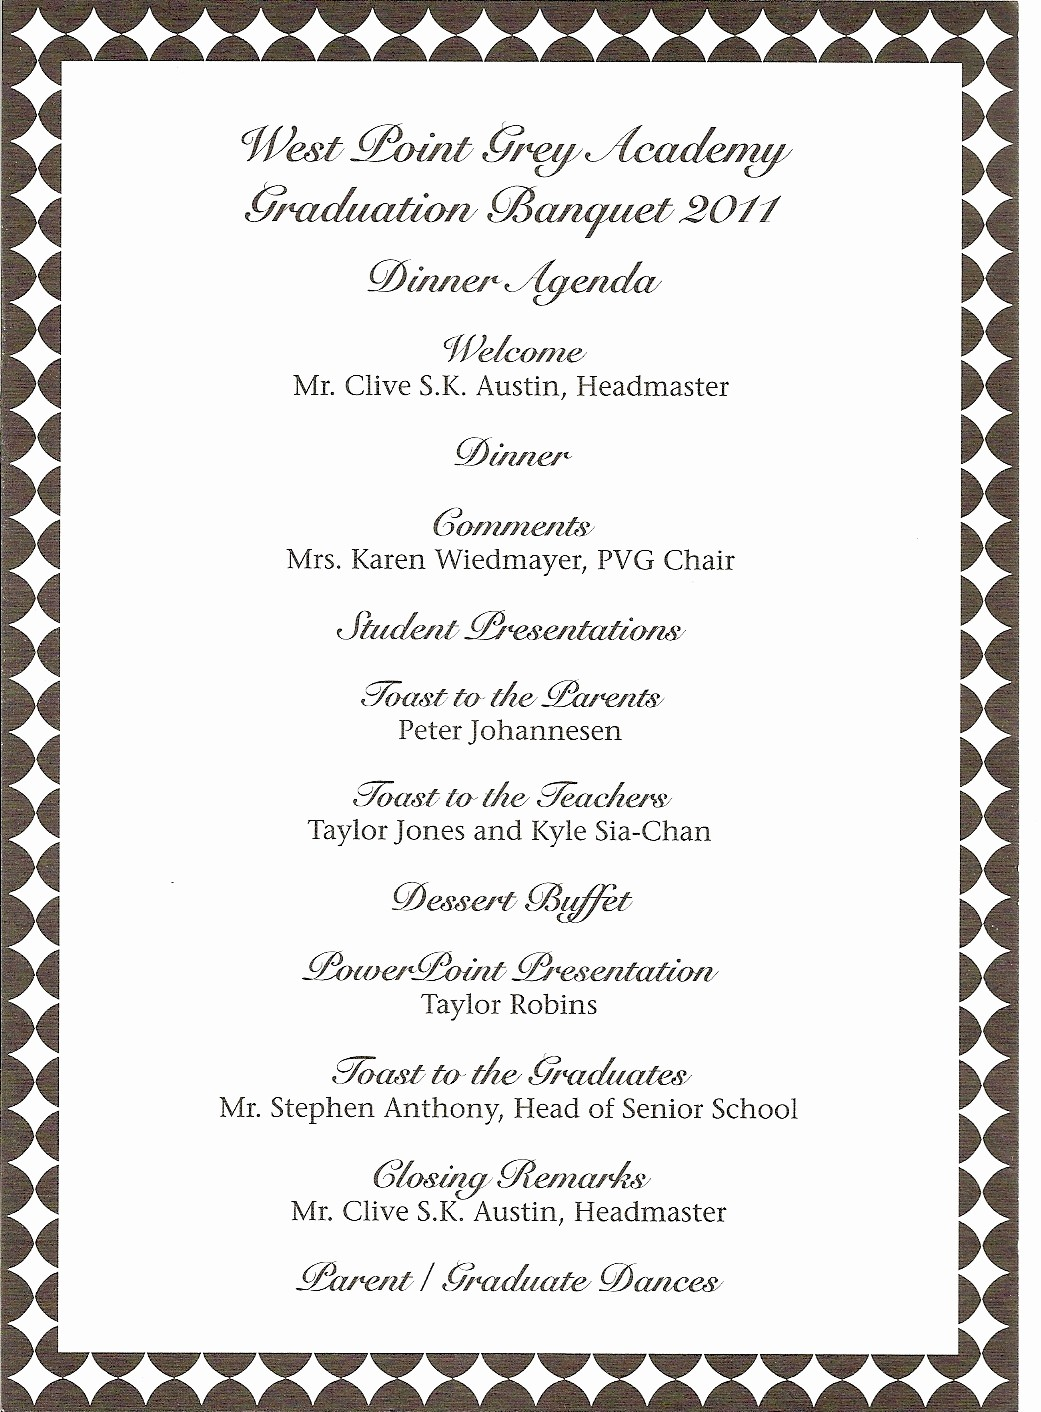 High School Graduation Program Template Fresh High School Mencement Ceremony Program Want to Make